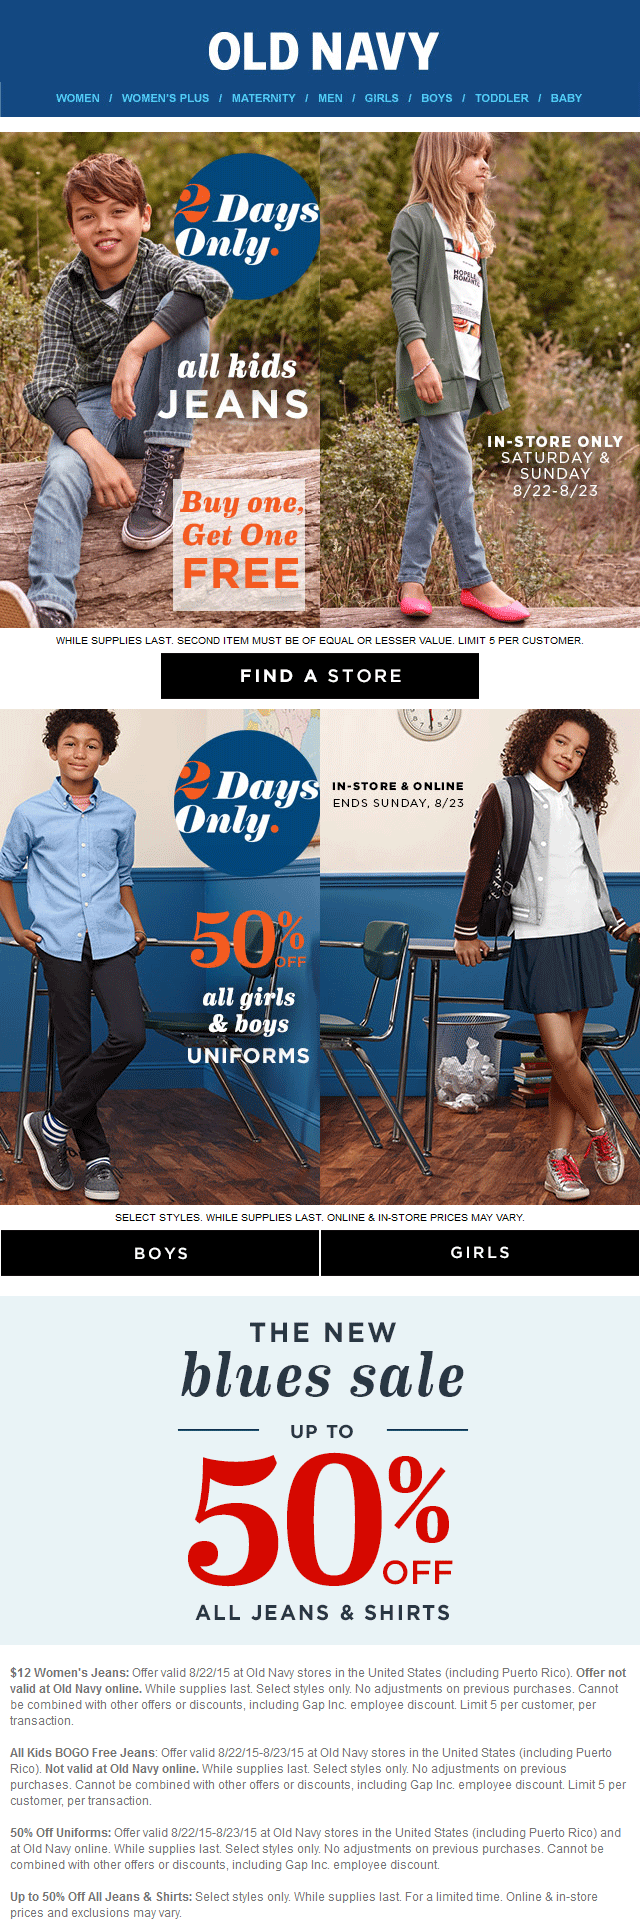 Old Navy Coupon October 2018 Second kids jeans free today at Old Navy